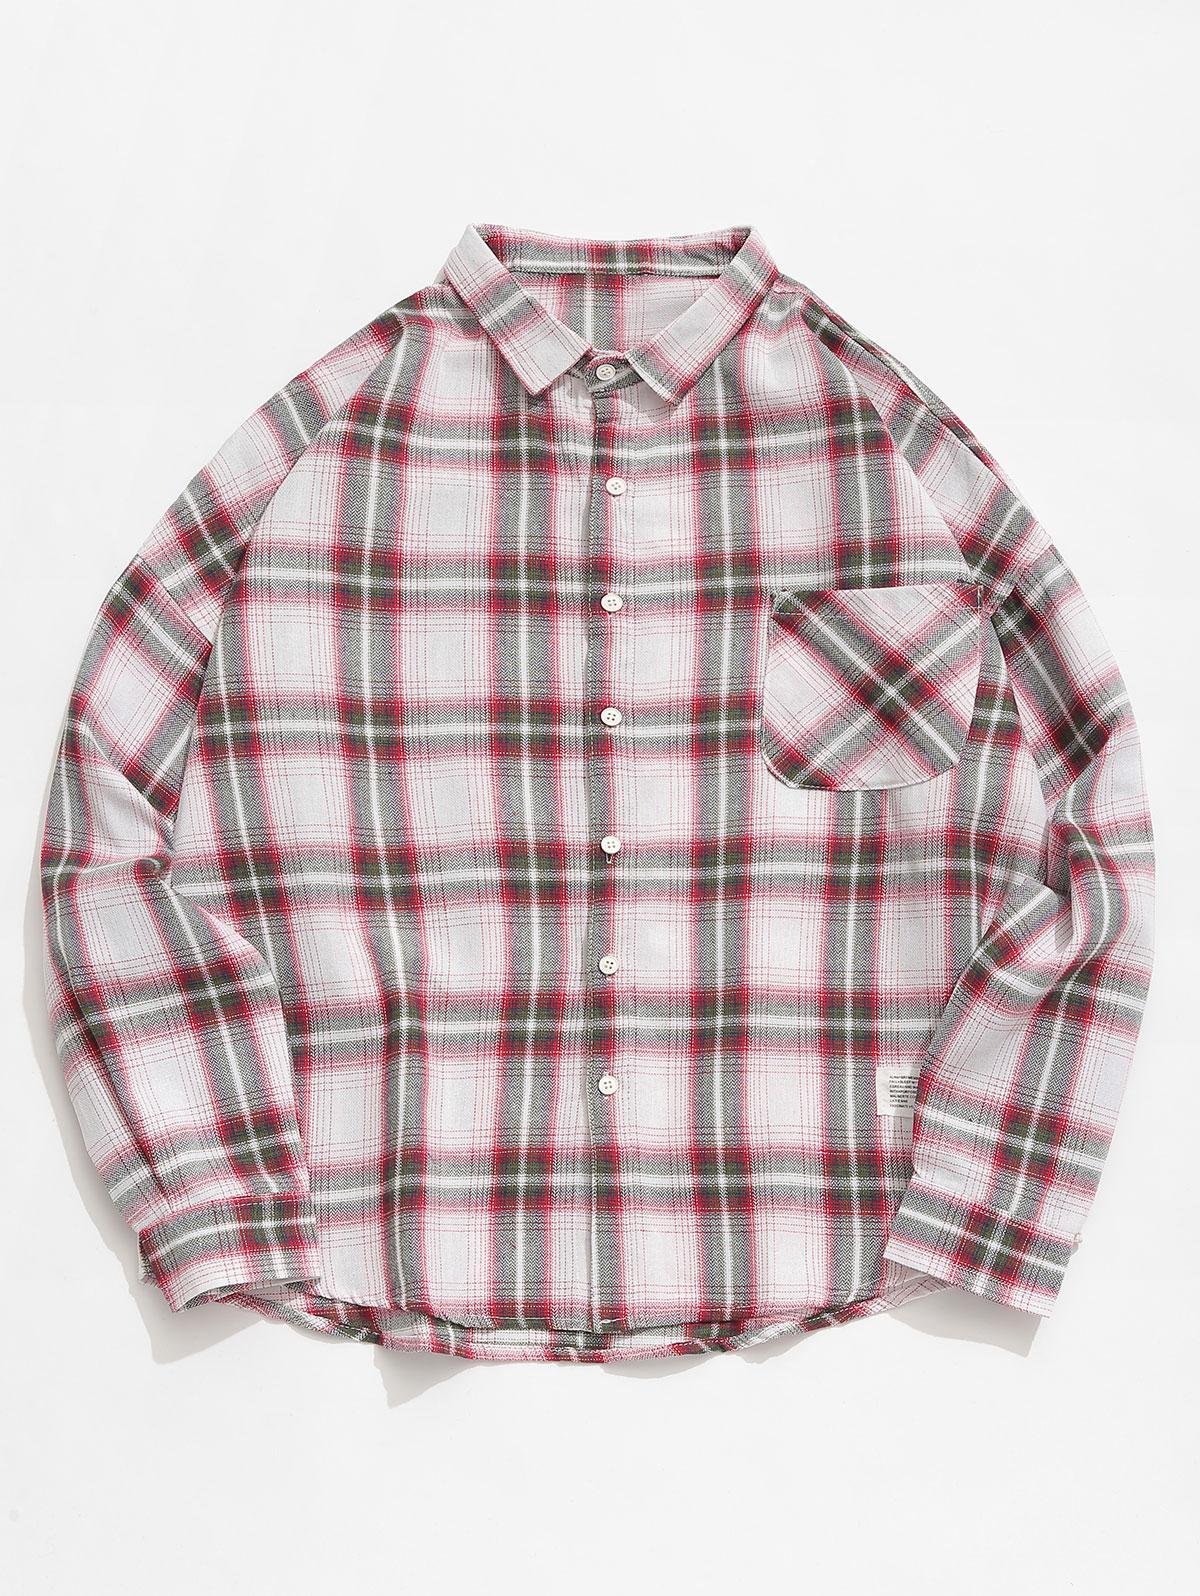 Applique Plaid Long Sleeves Shirt